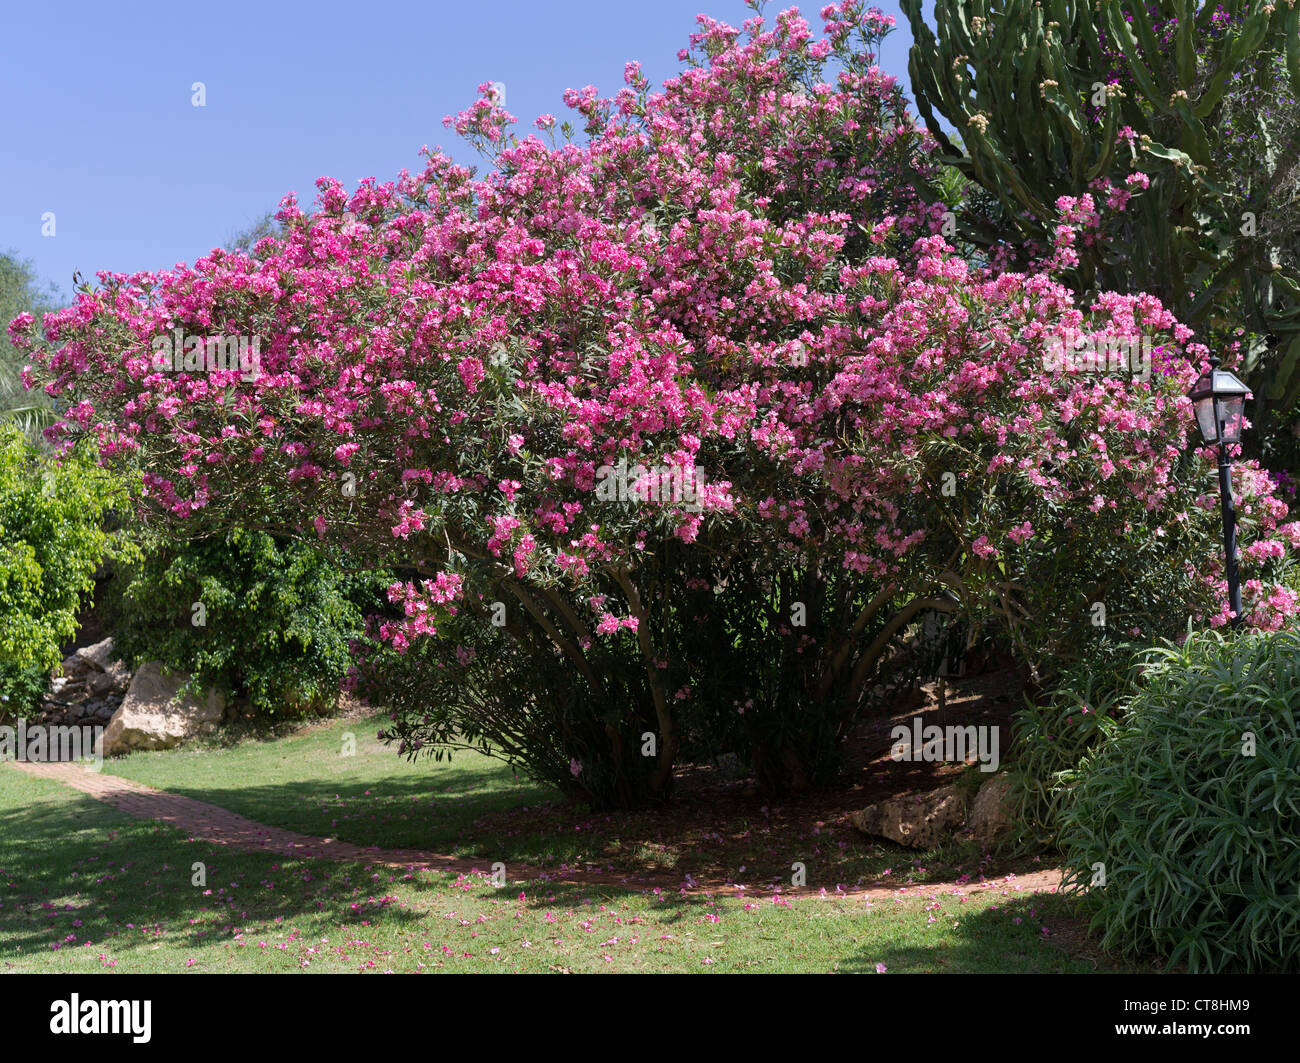 dh flora cyprus pink flowering nerium oleander bush stock photo 49361993 alamy. Black Bedroom Furniture Sets. Home Design Ideas